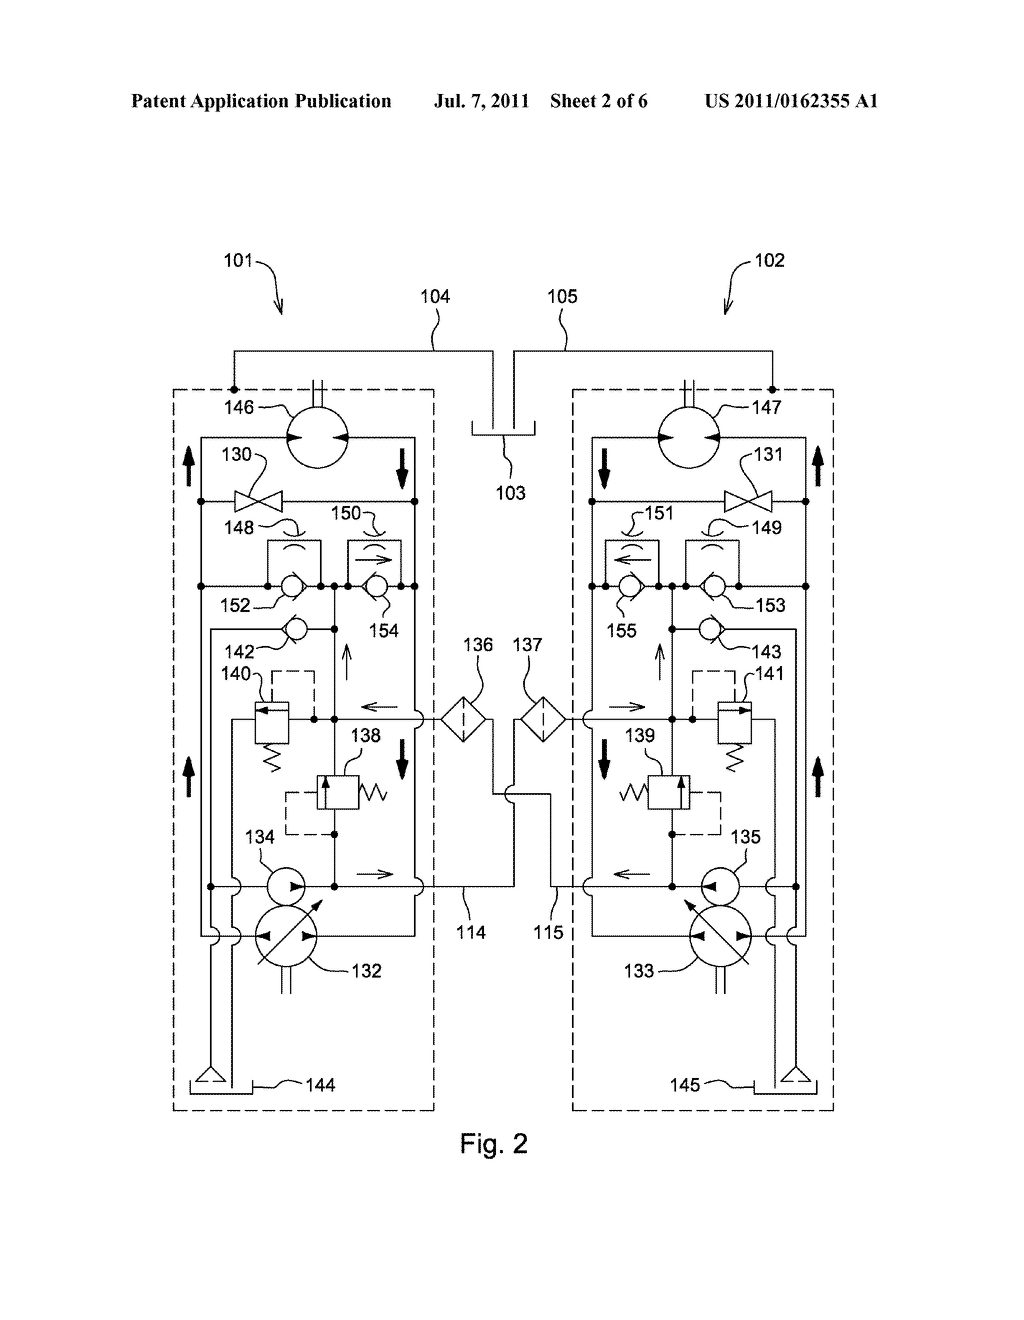 Hydraulic Fluid Cooling System For Pair Of Integrated Hydrostatic Valve Wiring Diagram Transmissions With Auxiliary Circuit Schematic And Image 03